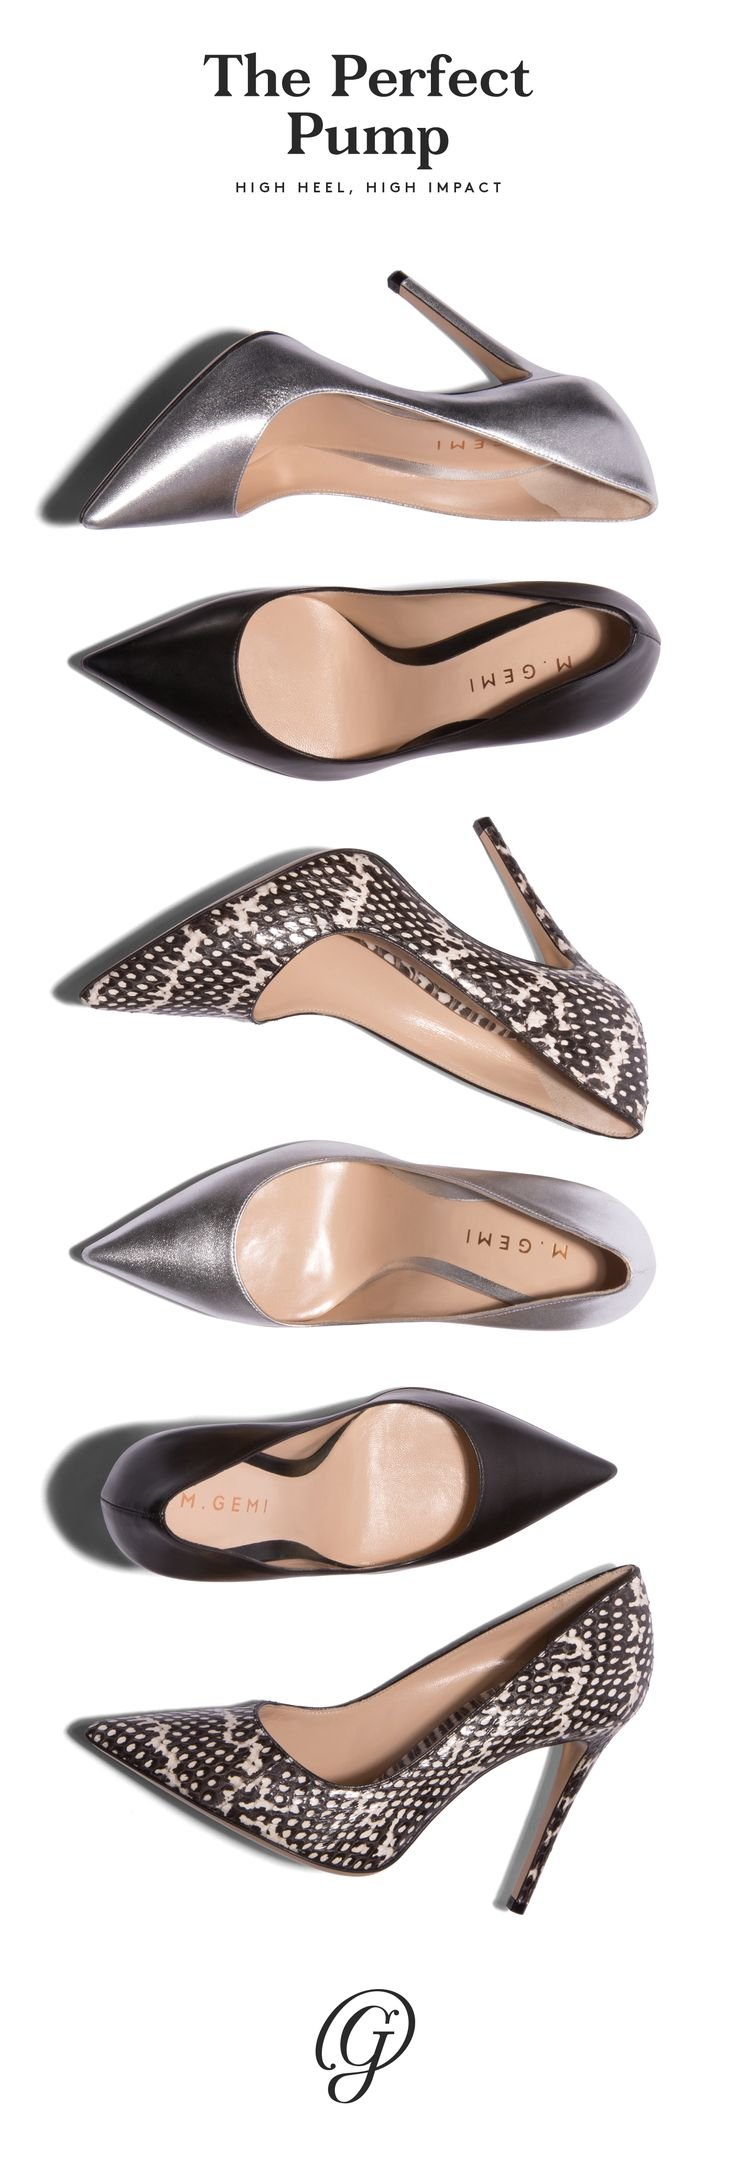 Whether in black leather, silver metallic nappa, or black-and-white watersnake, these high-impact high heels turn a basic outfit (jeans and a T) into a full-on look. Shop our pumps and elevate your look. | @ working 9 to 5